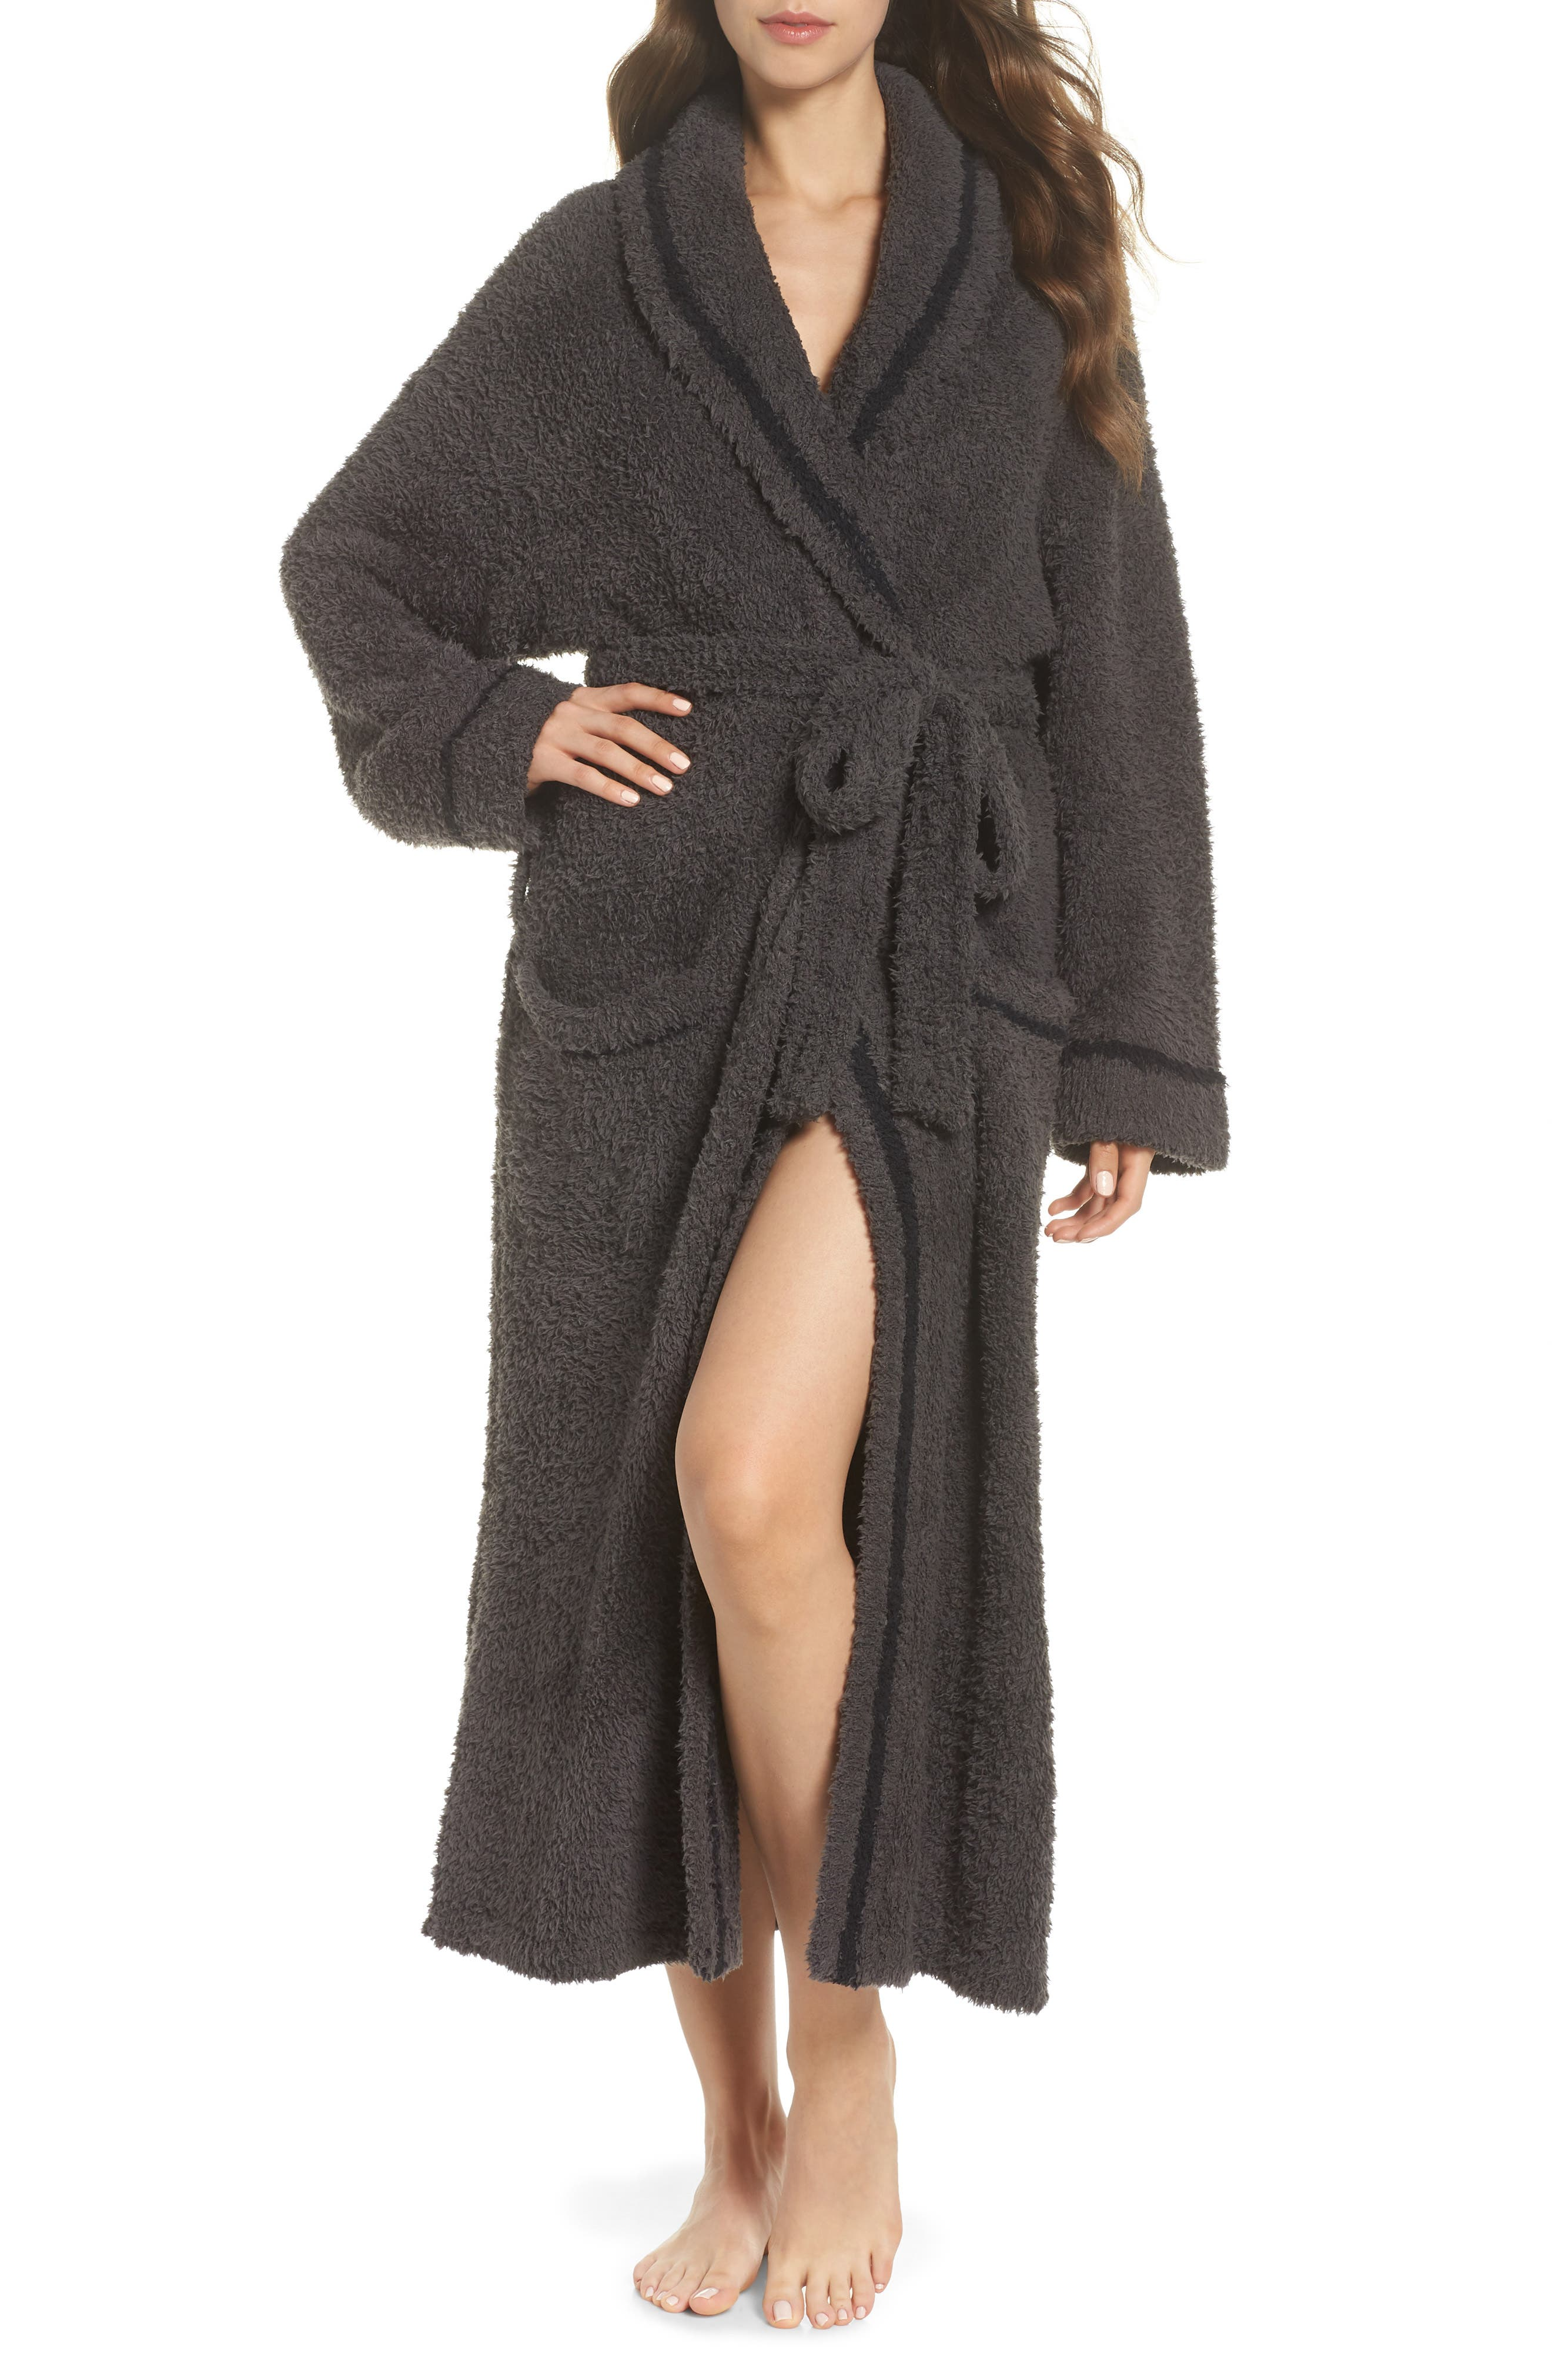 x Disney Classic Series CozyChic<sup>®</sup> Robe,                             Main thumbnail 1, color,                             CARBON/ BLACK